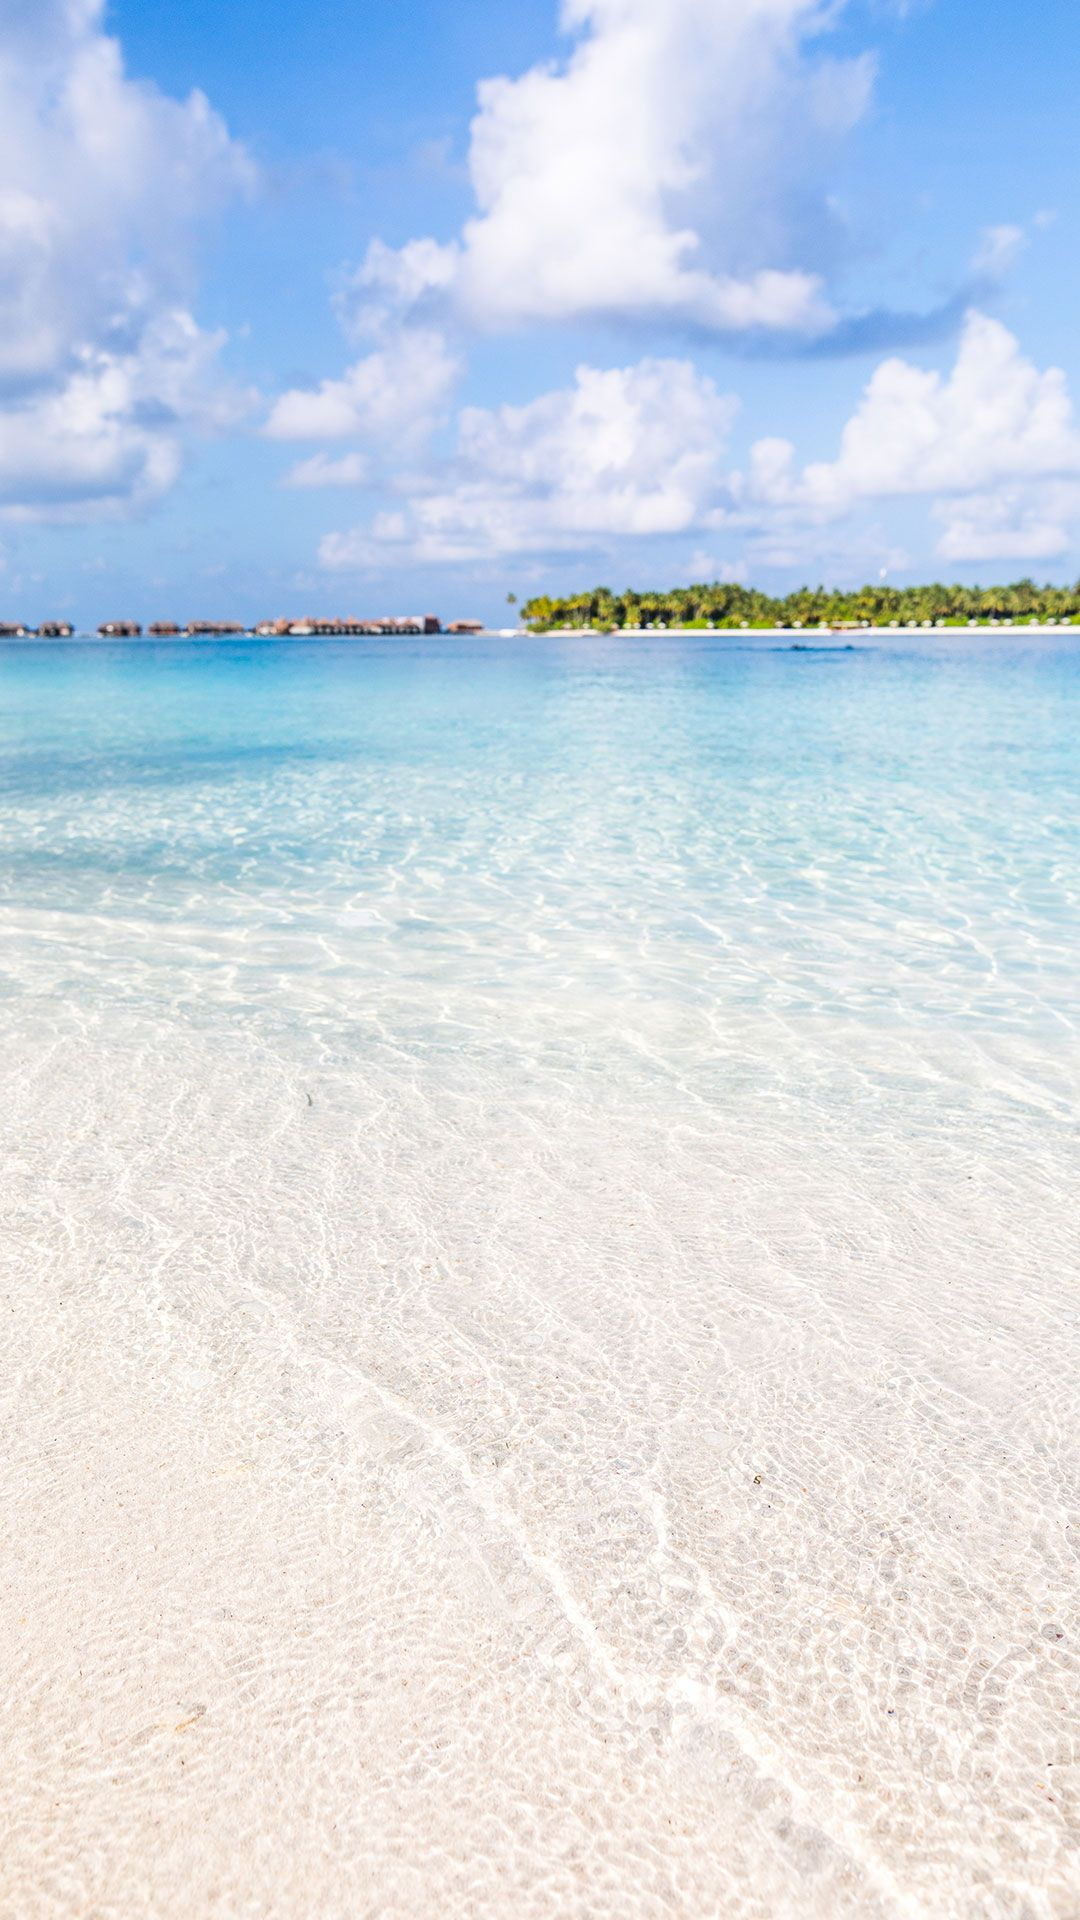 116 Free Beach Wallpapers For Your Phone Desktop Beach Wallpaper Maldives Wallpaper Ocean Wallpaper